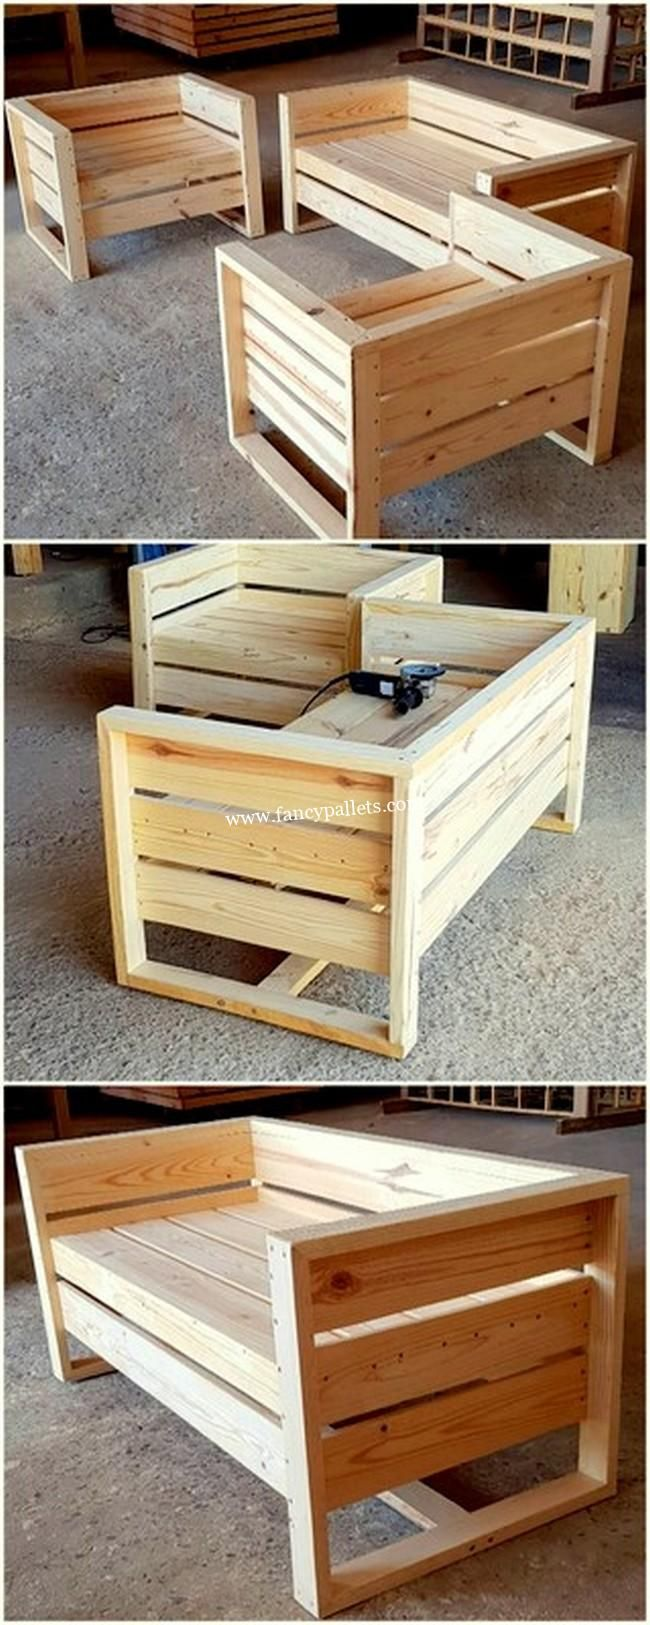 DIY Pallet Wood Furniture Ideas Designed With Reused Material – Fancy Pallets